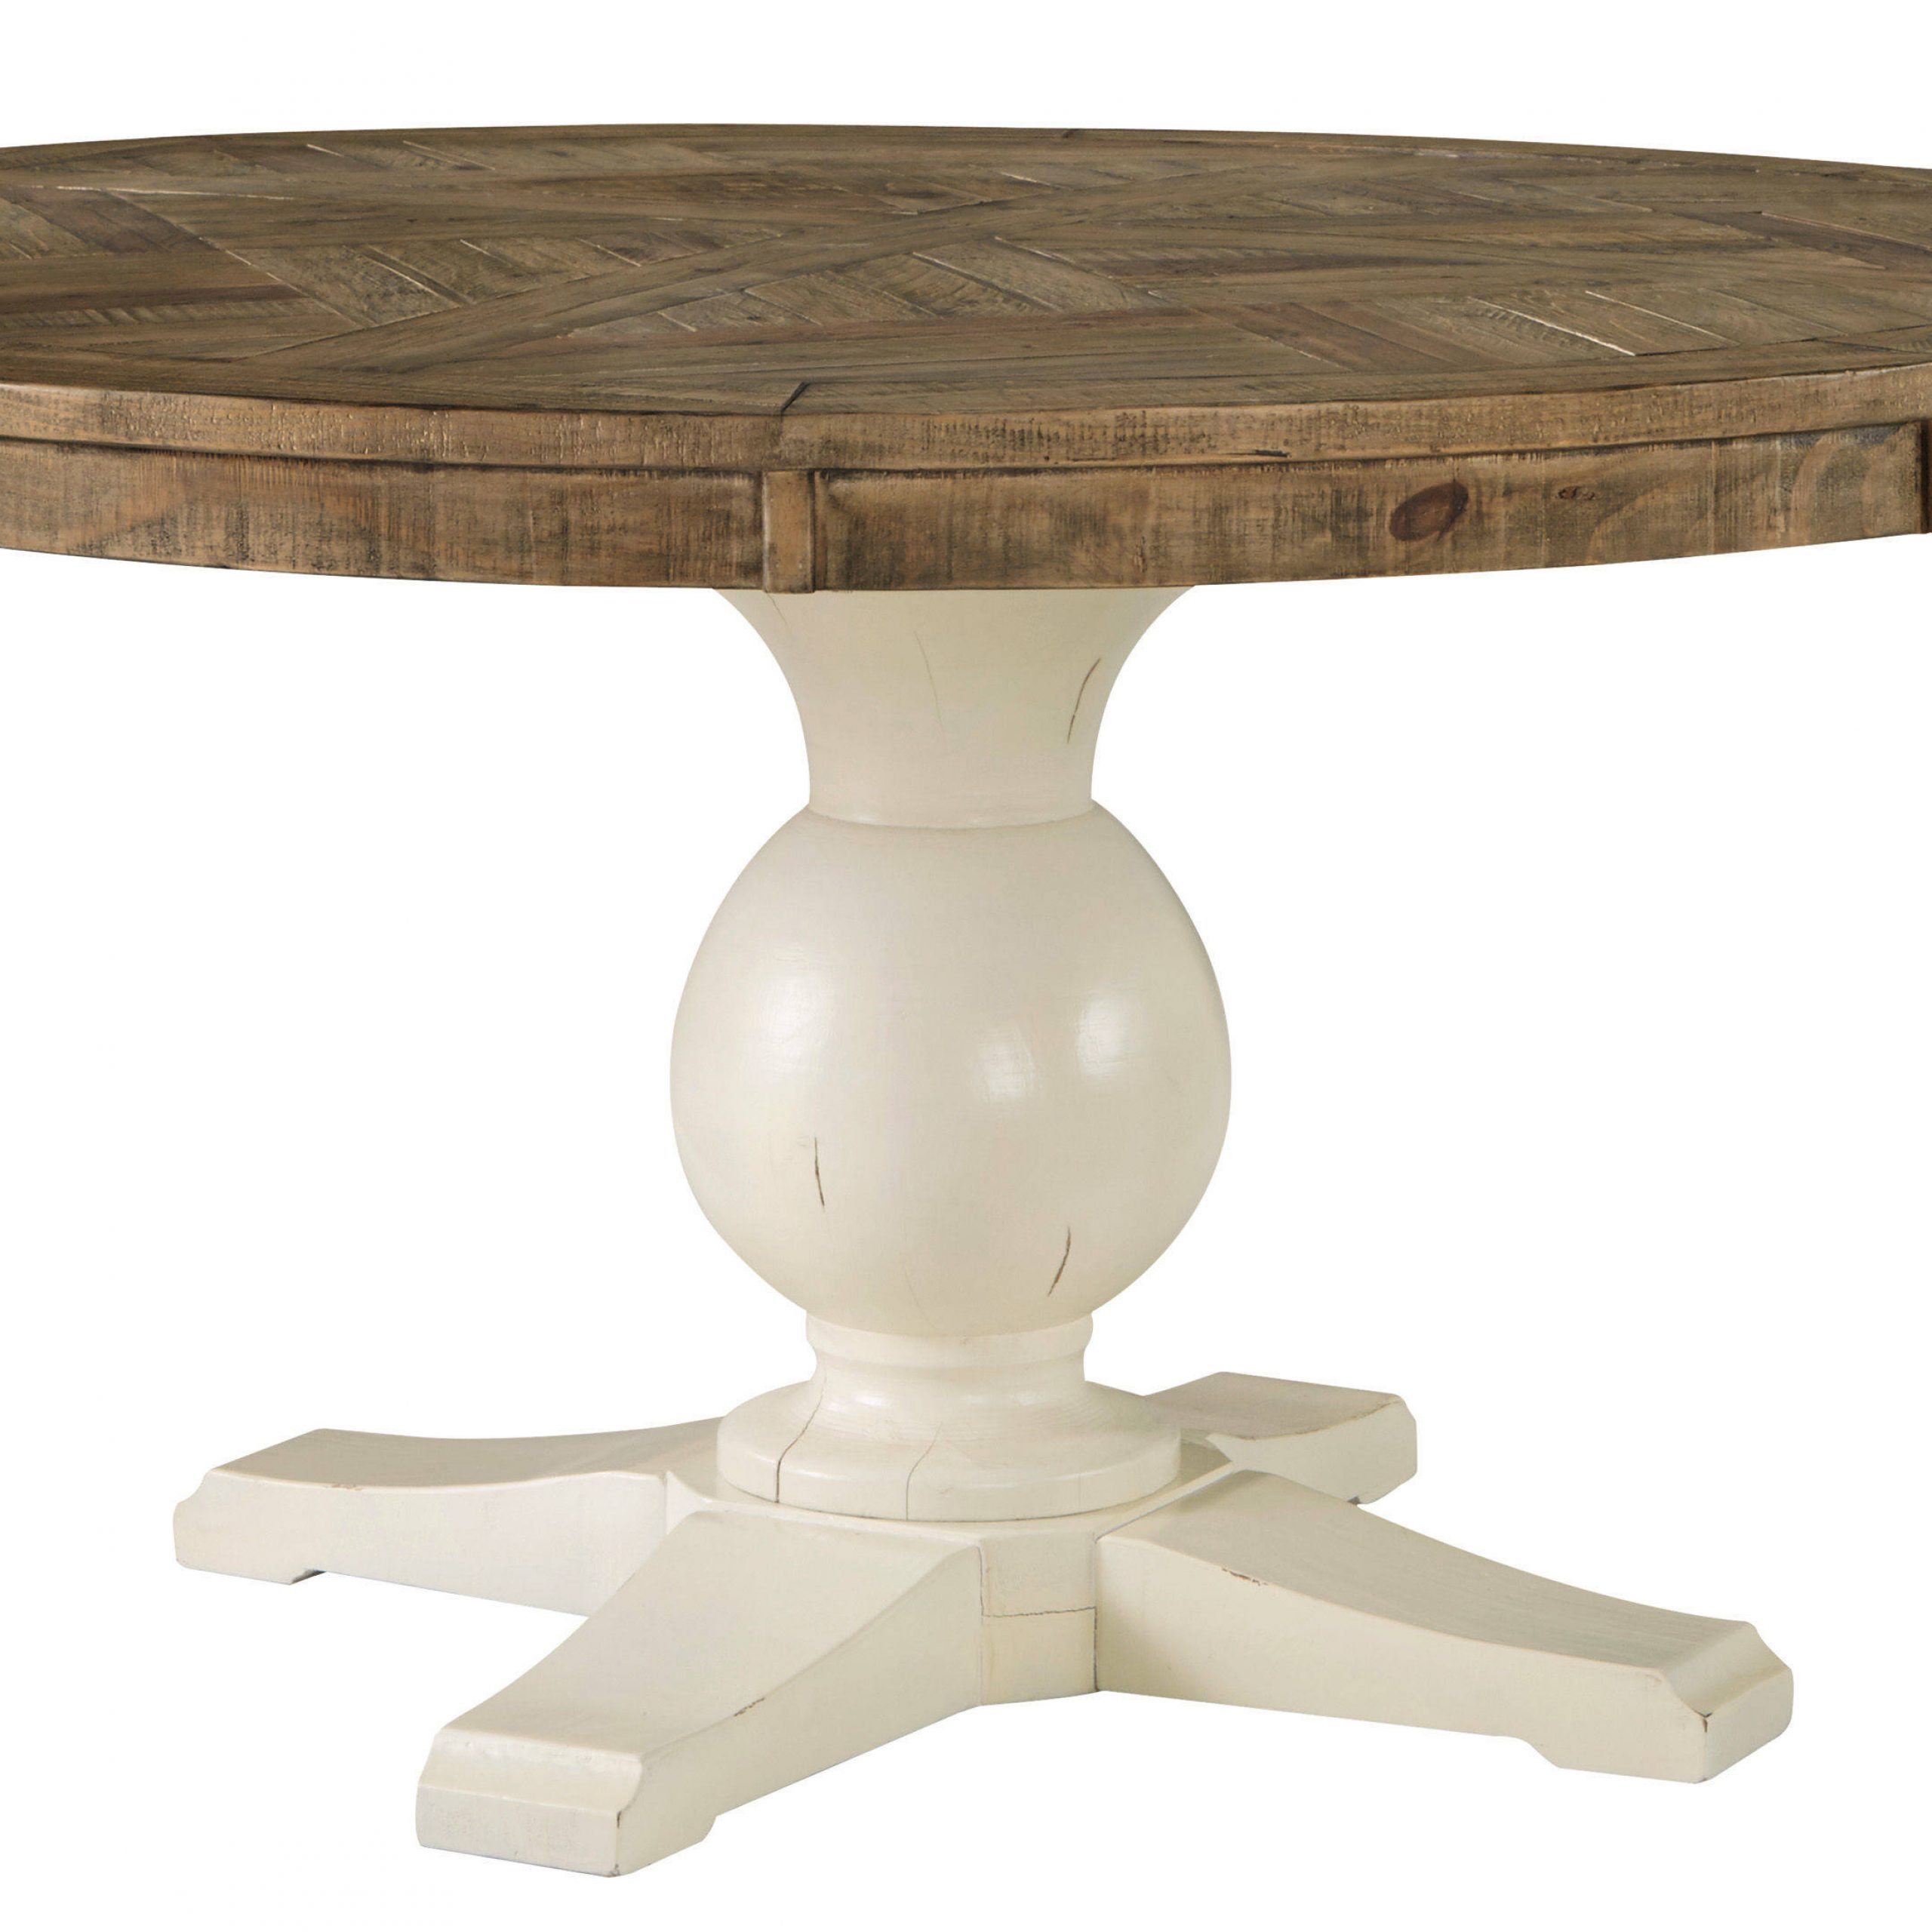 Solid Wood Circular Dining Tables White Throughout Most Up To Date Likable Round Dining Table Wood Top Splendid Furniture Room (View 27 of 30)